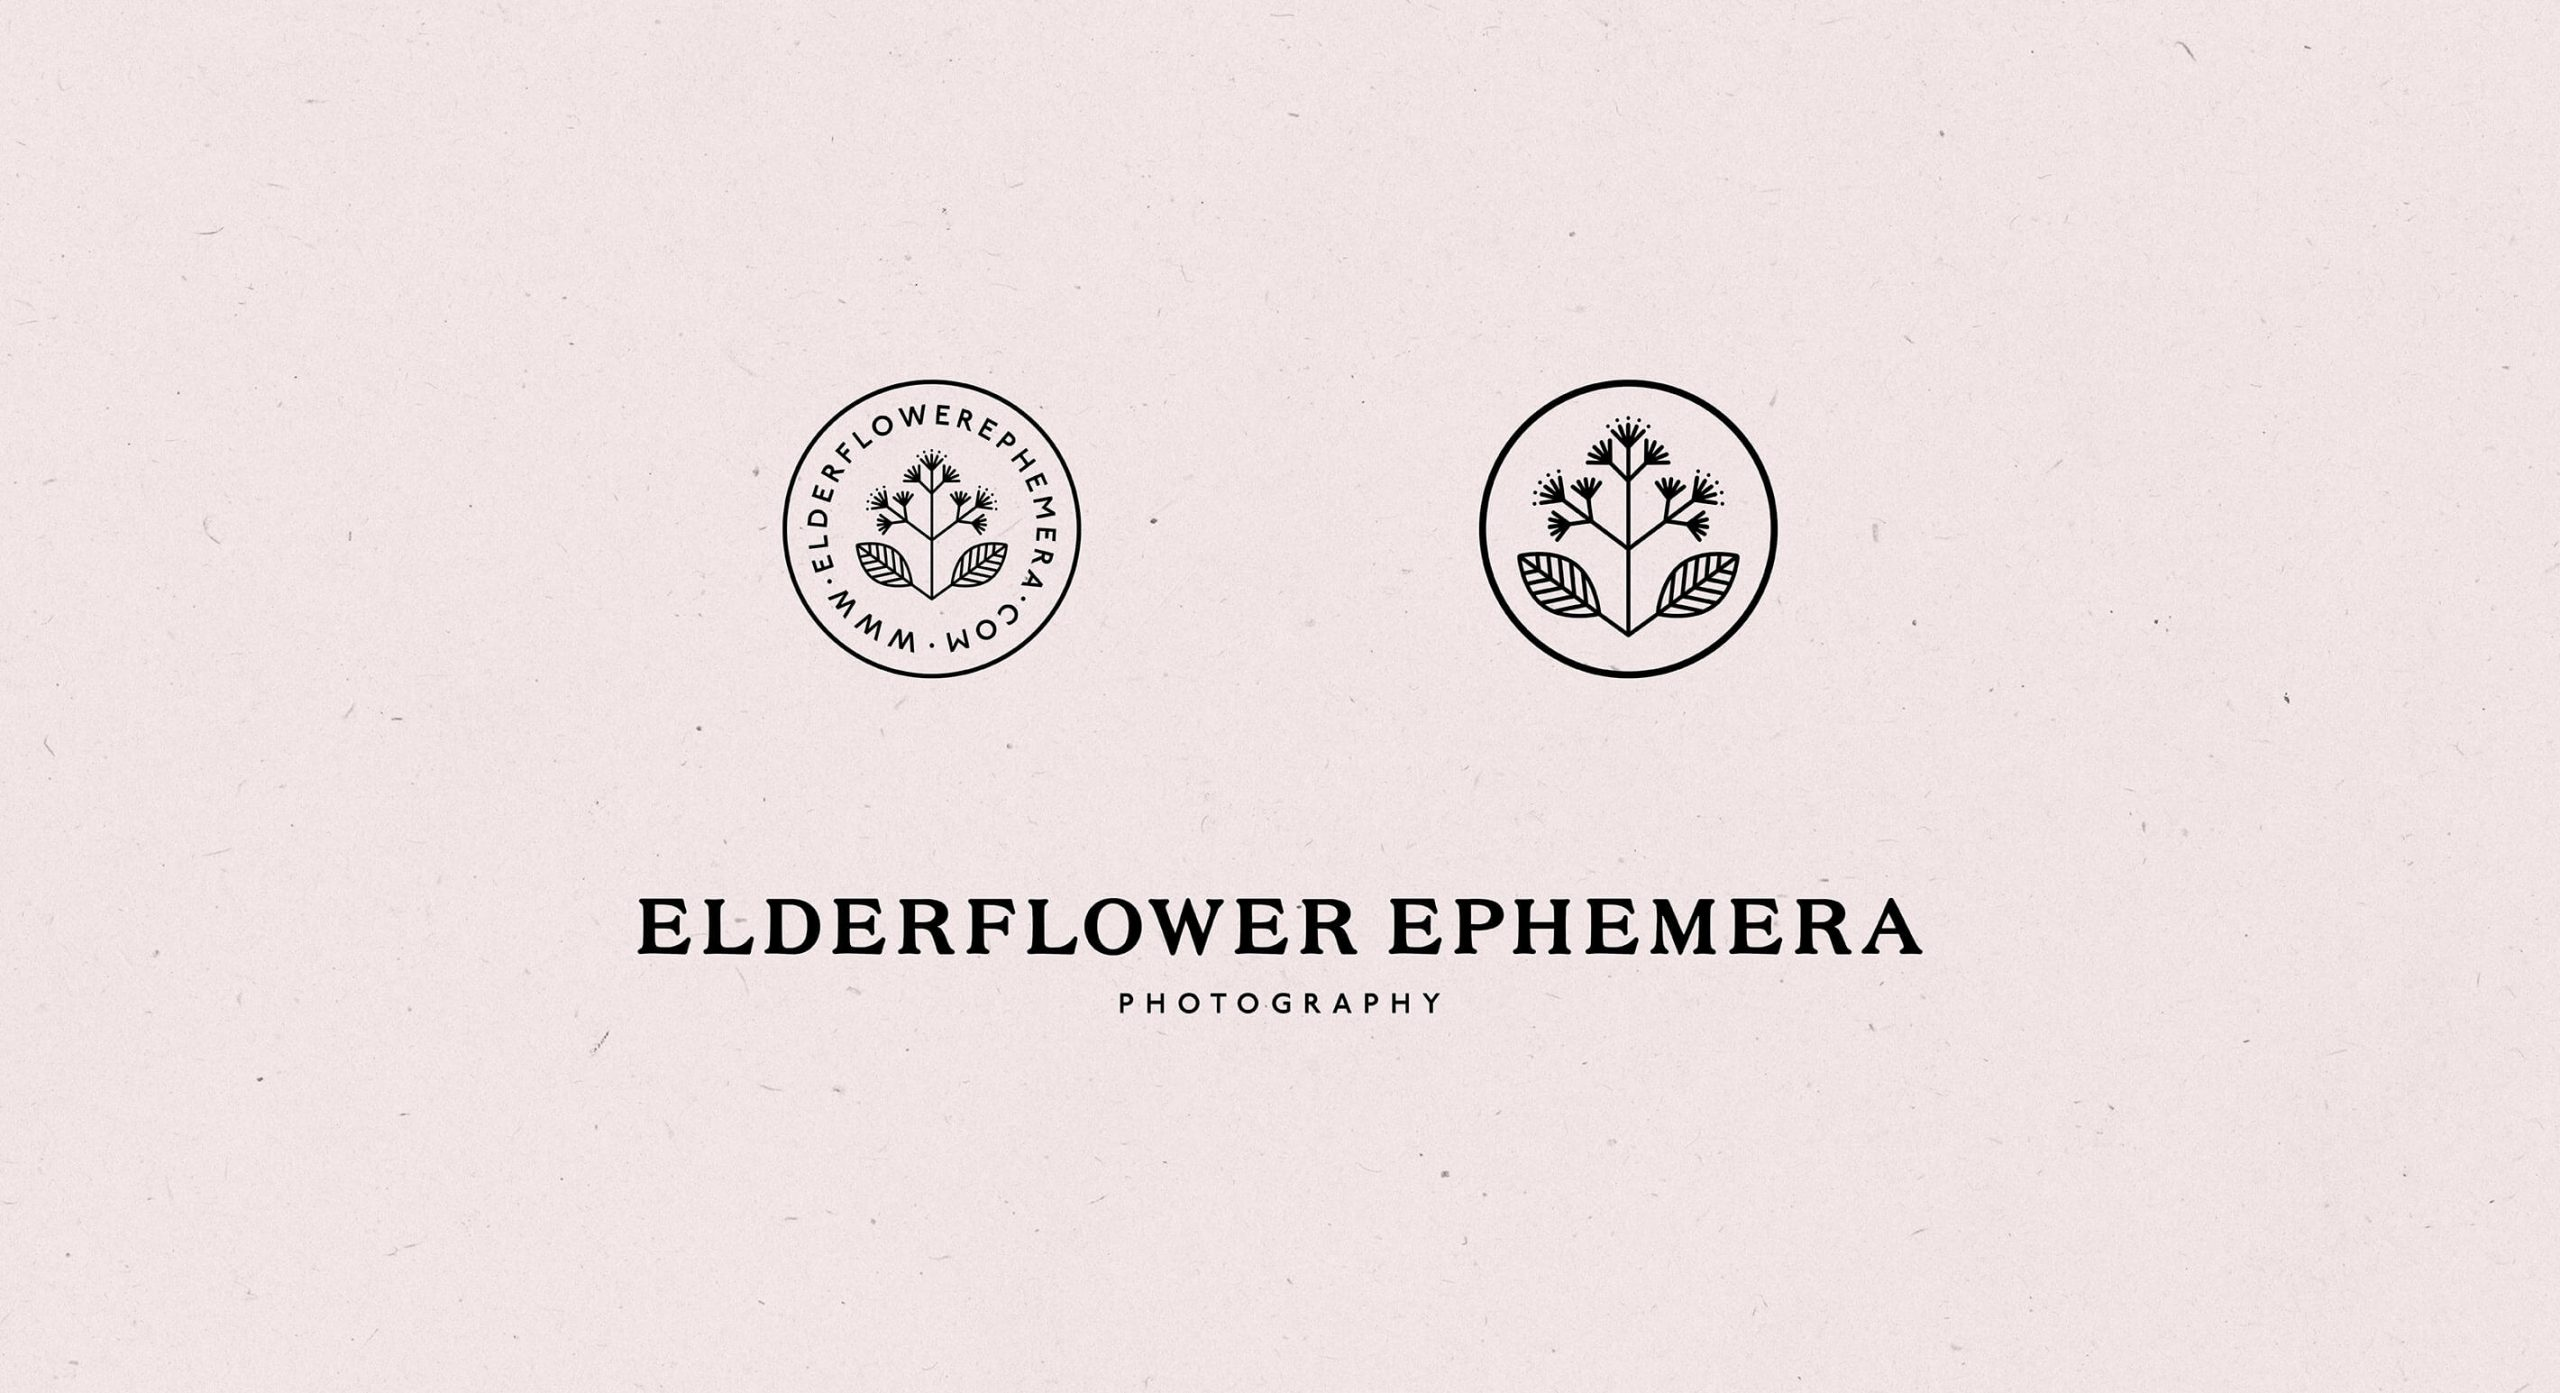 Obscurio & Co brand identity design for film photographer elderflower ephemera